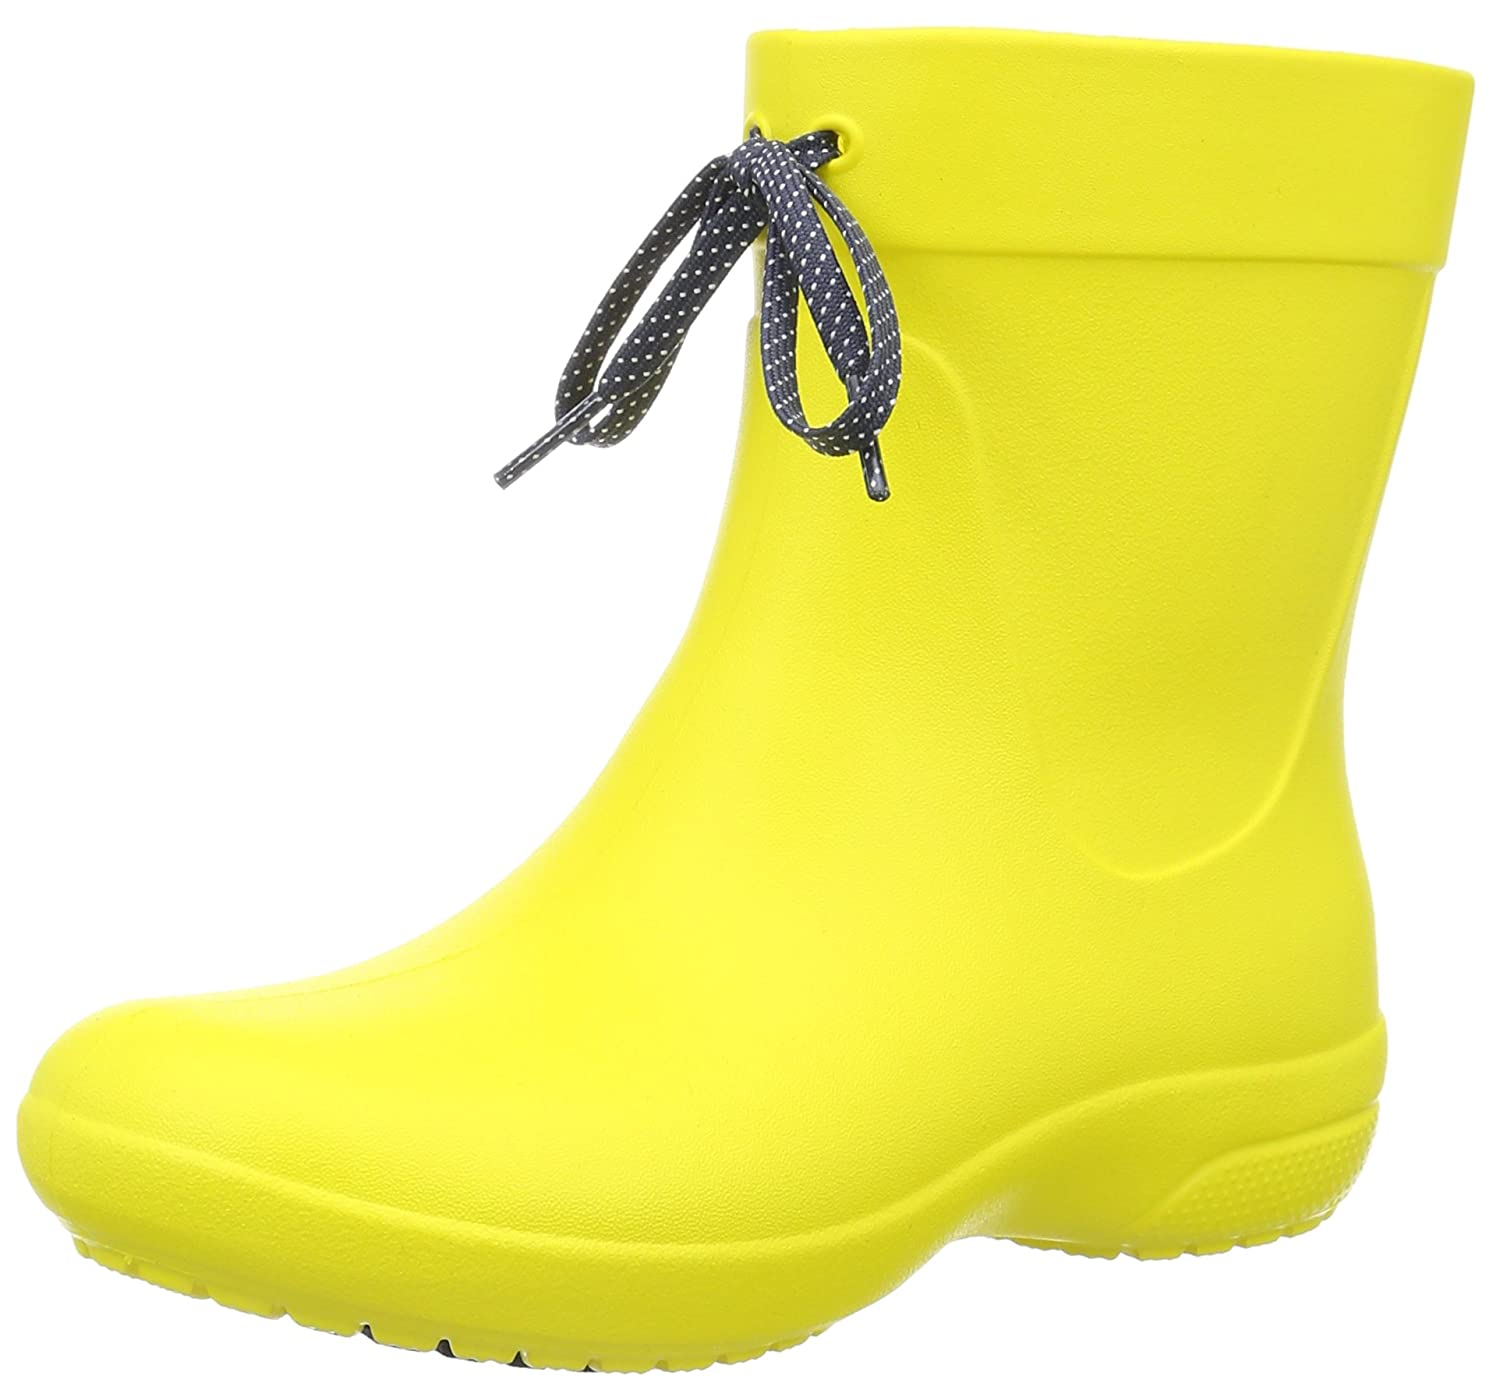 Crocs Freesail Shorty Rain Crocs Boots, Bottes Femme Rain 16436 Jaune (Lemon) d814b58 - jessicalock.space